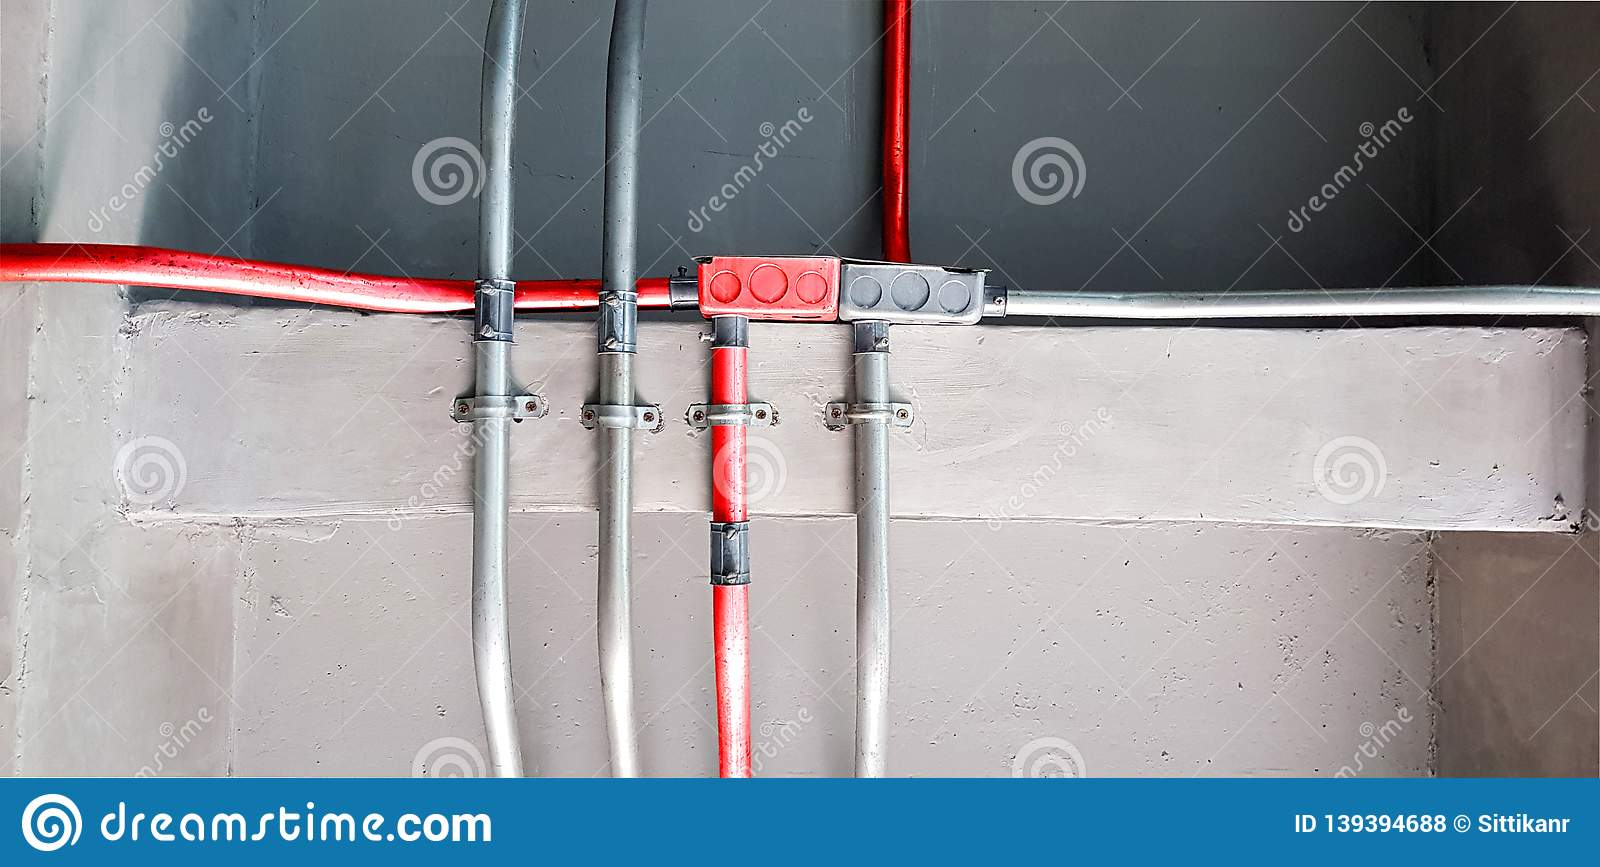 Electric Pipes And Red Electric Pipes For Safety Systems In ... on